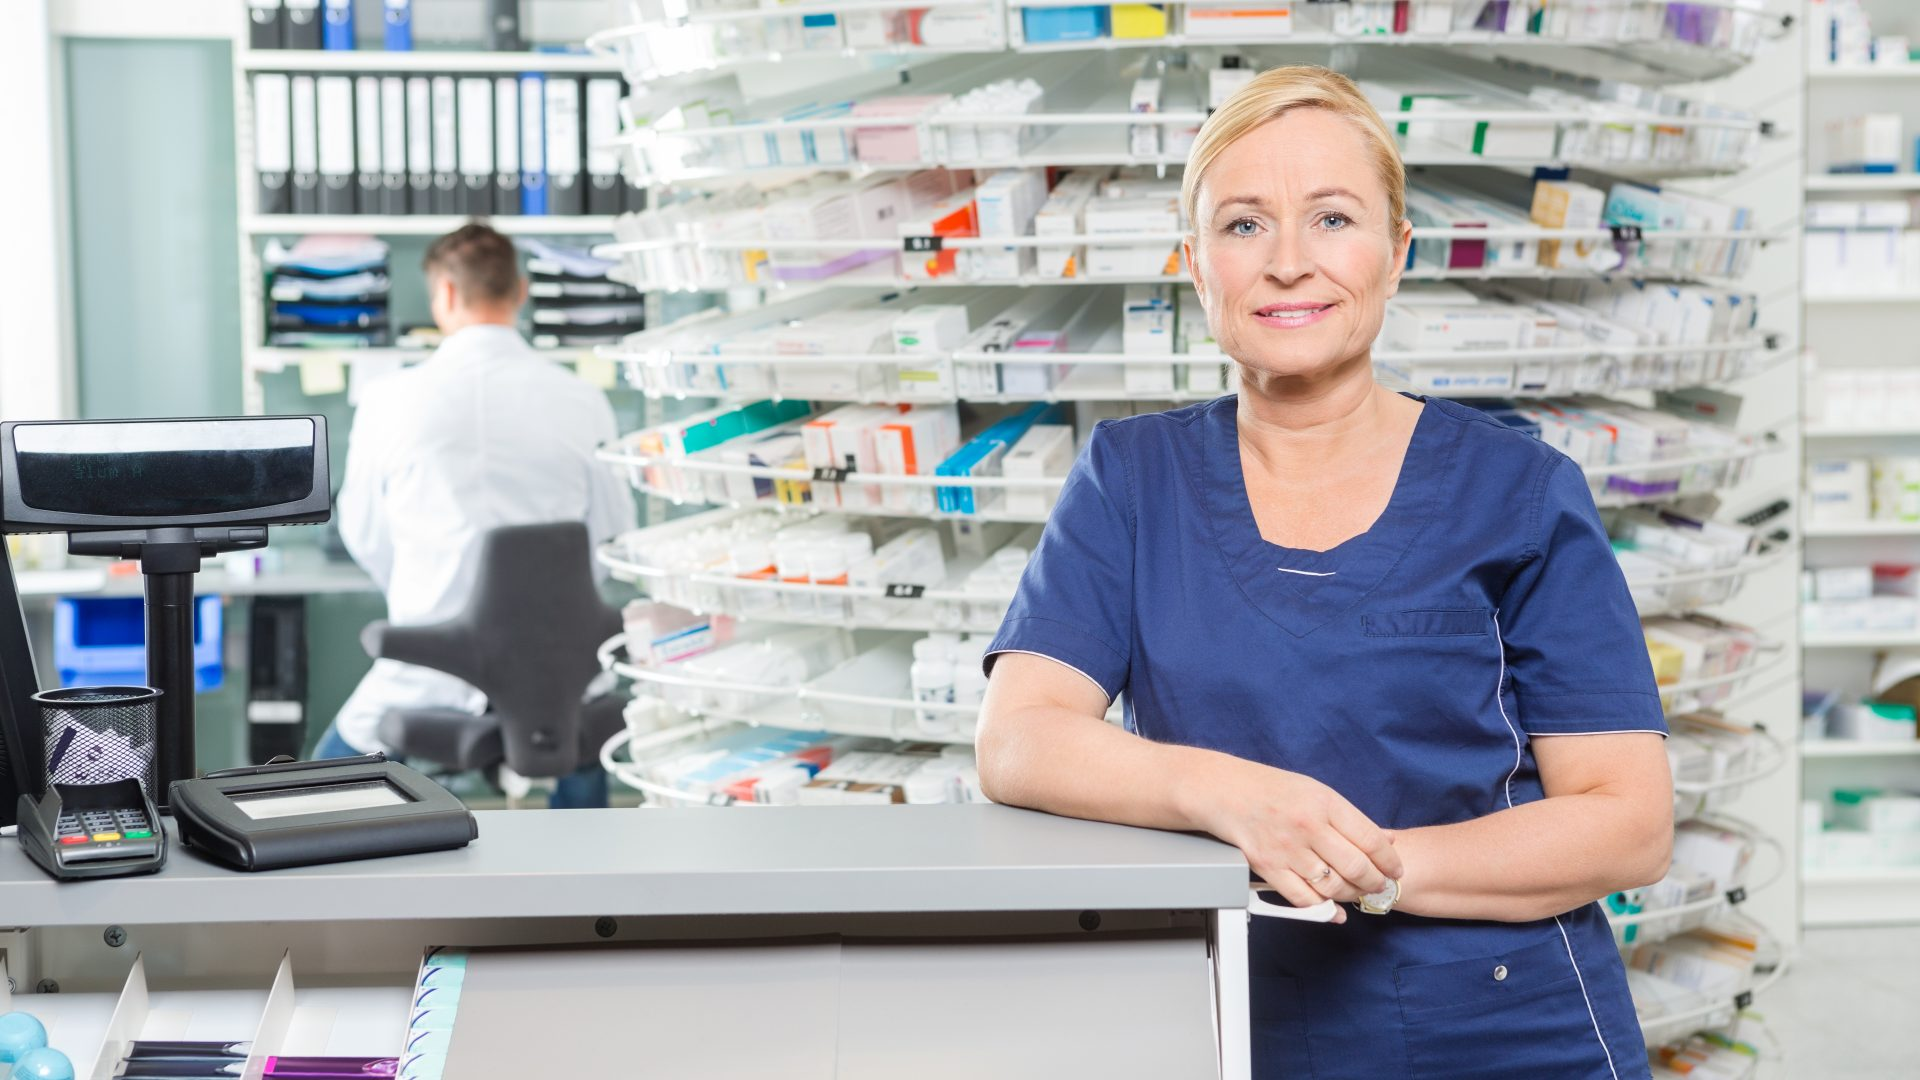 Female pharmacist standing at the counter